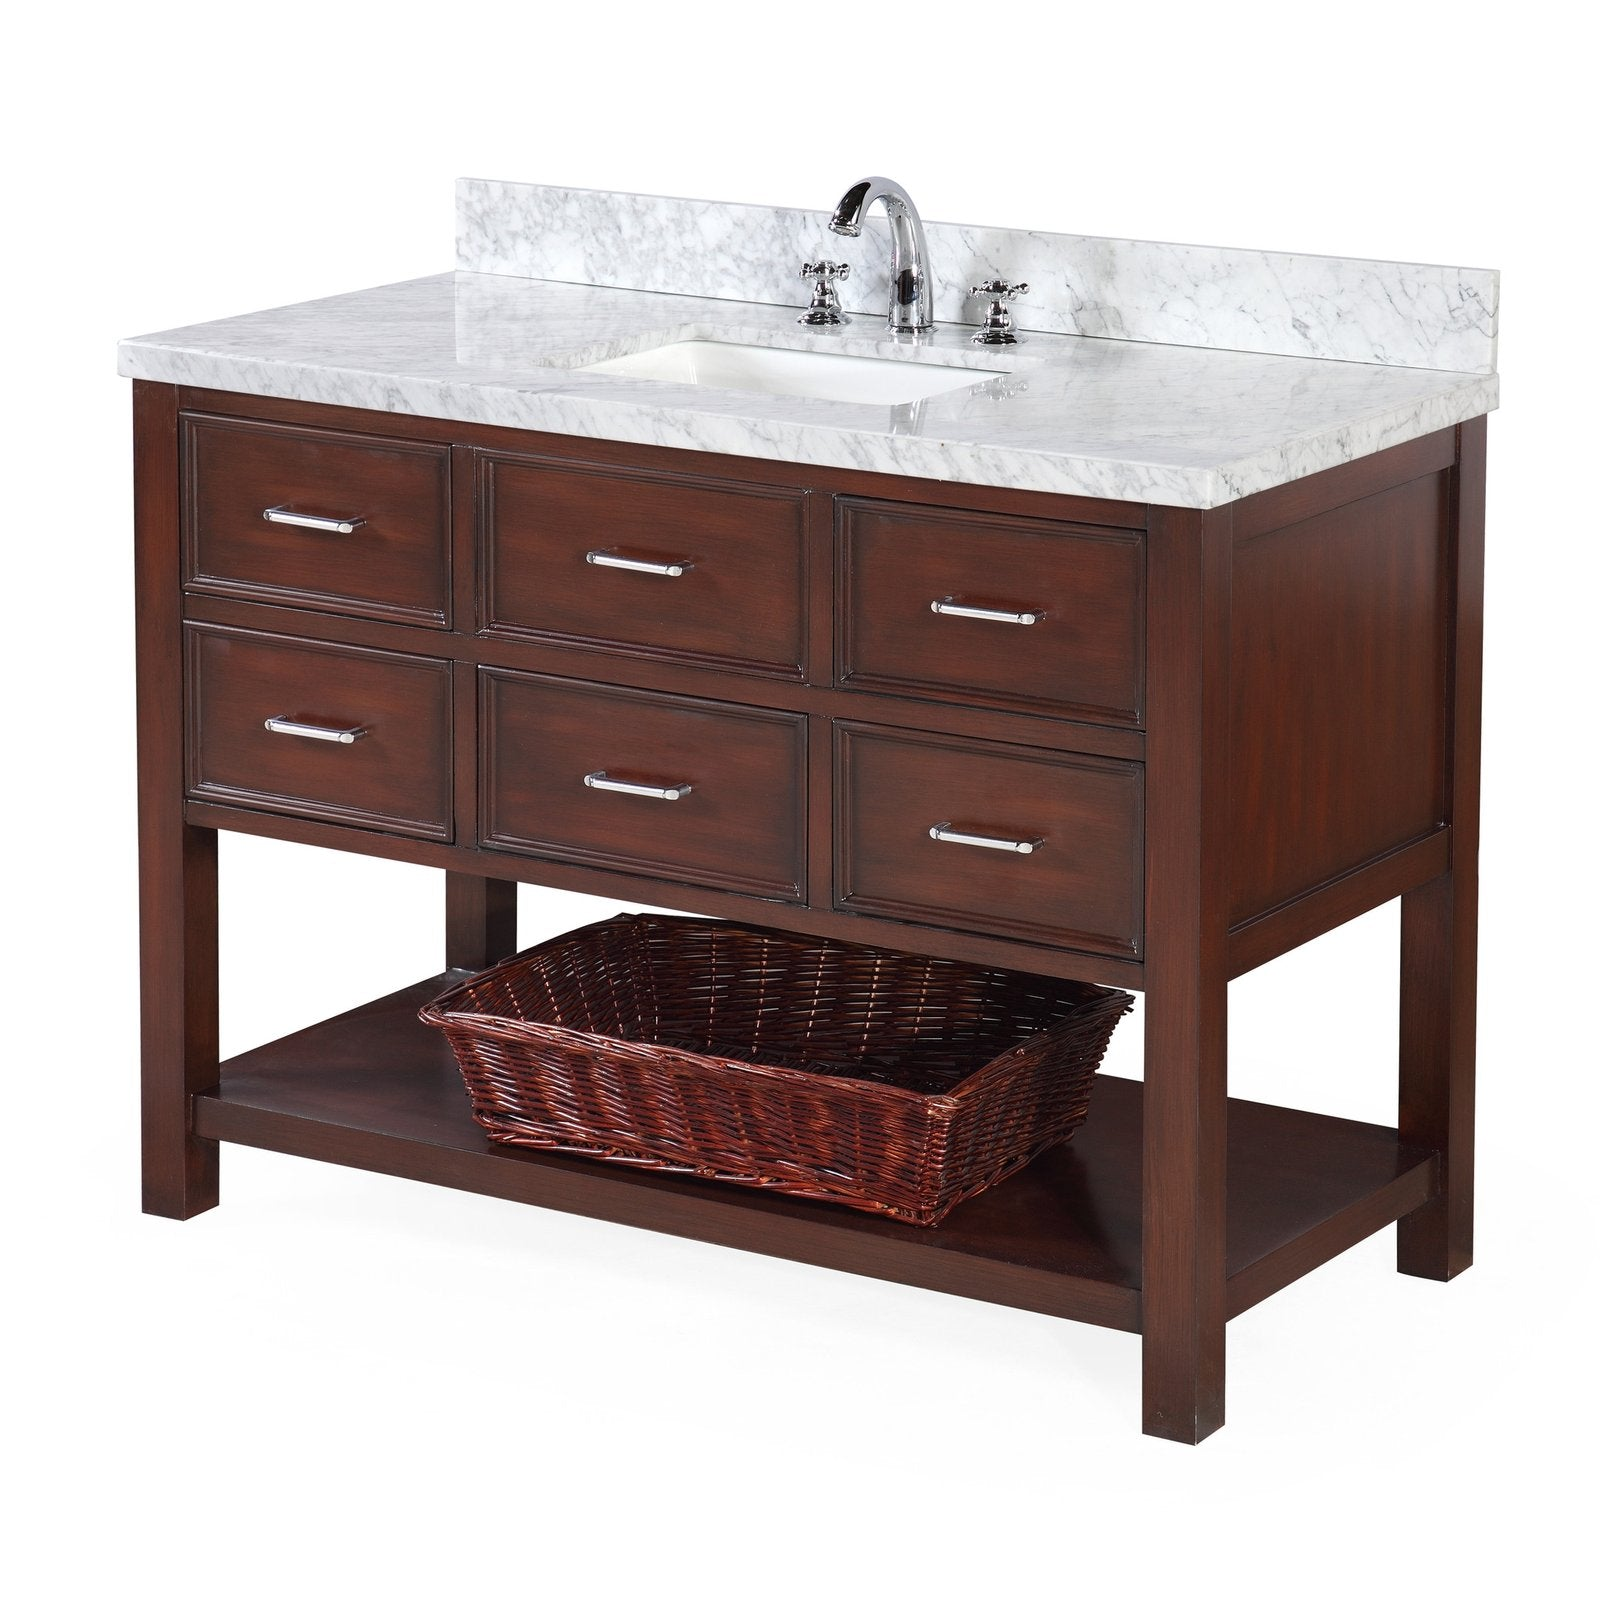 New Hampshire 48 Single Bathroom Vanity With Carrara Marble Top Kitchenbathcollection